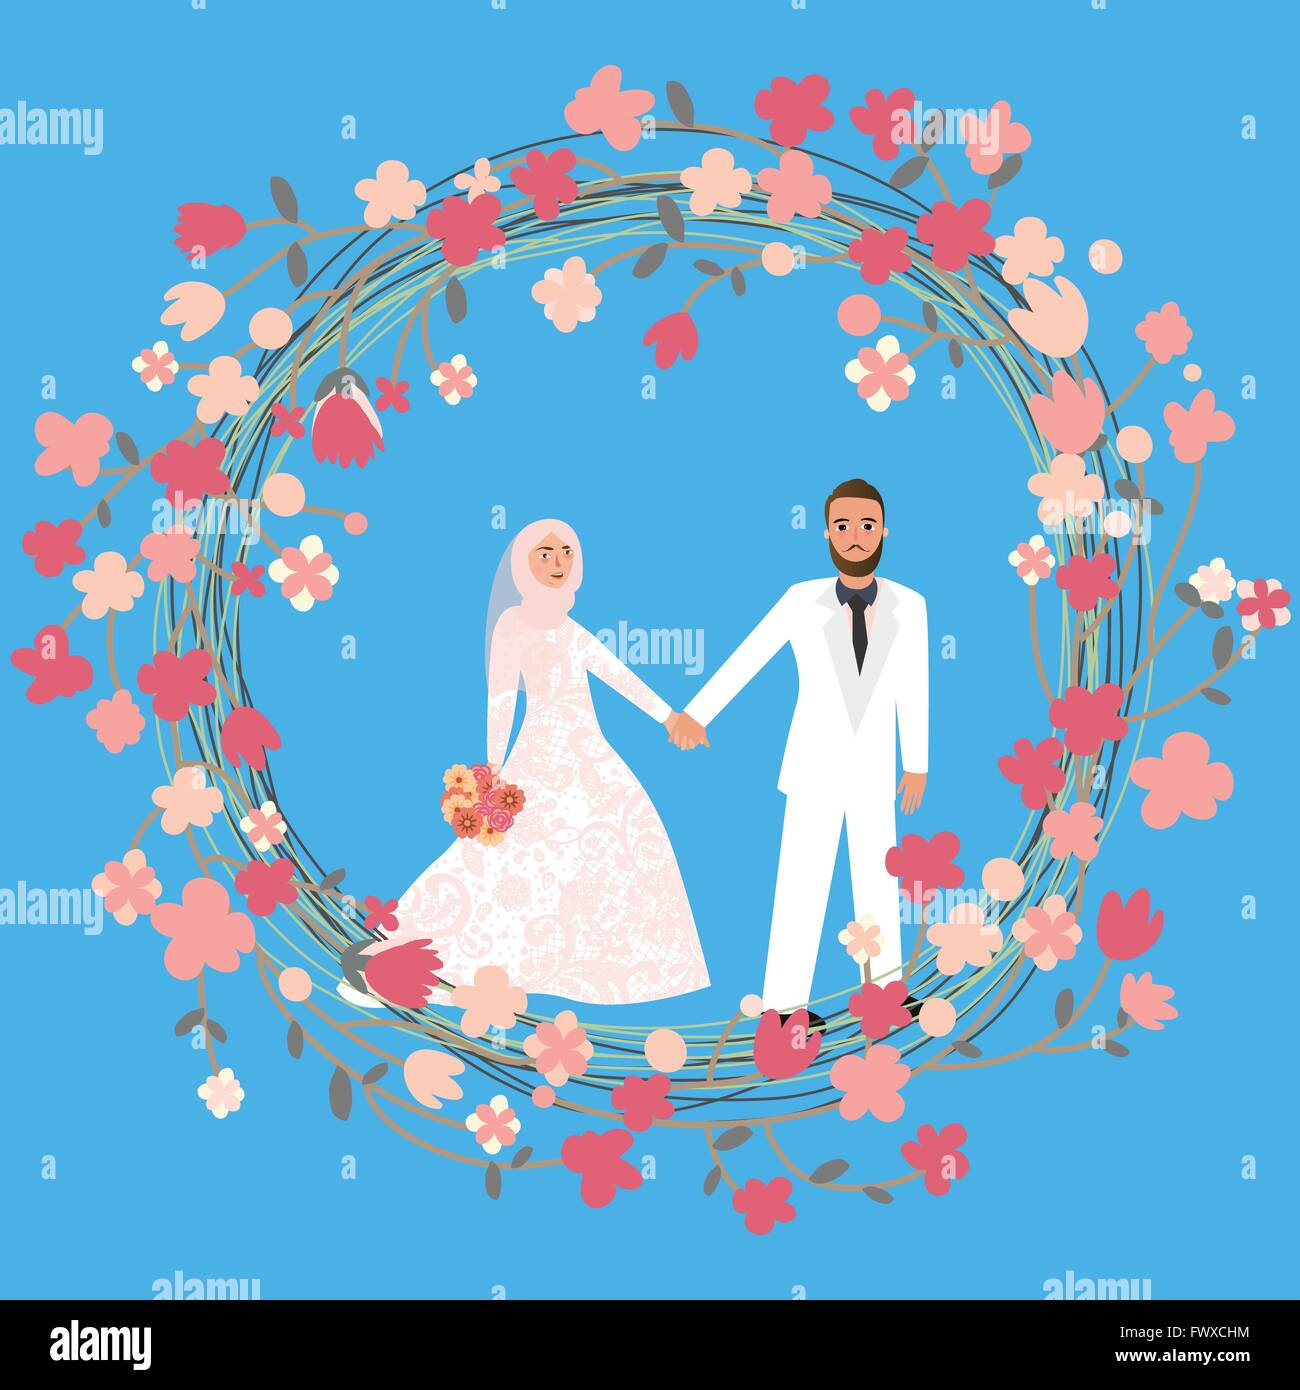 Muslim Marriage Stock Vector Images Alamy